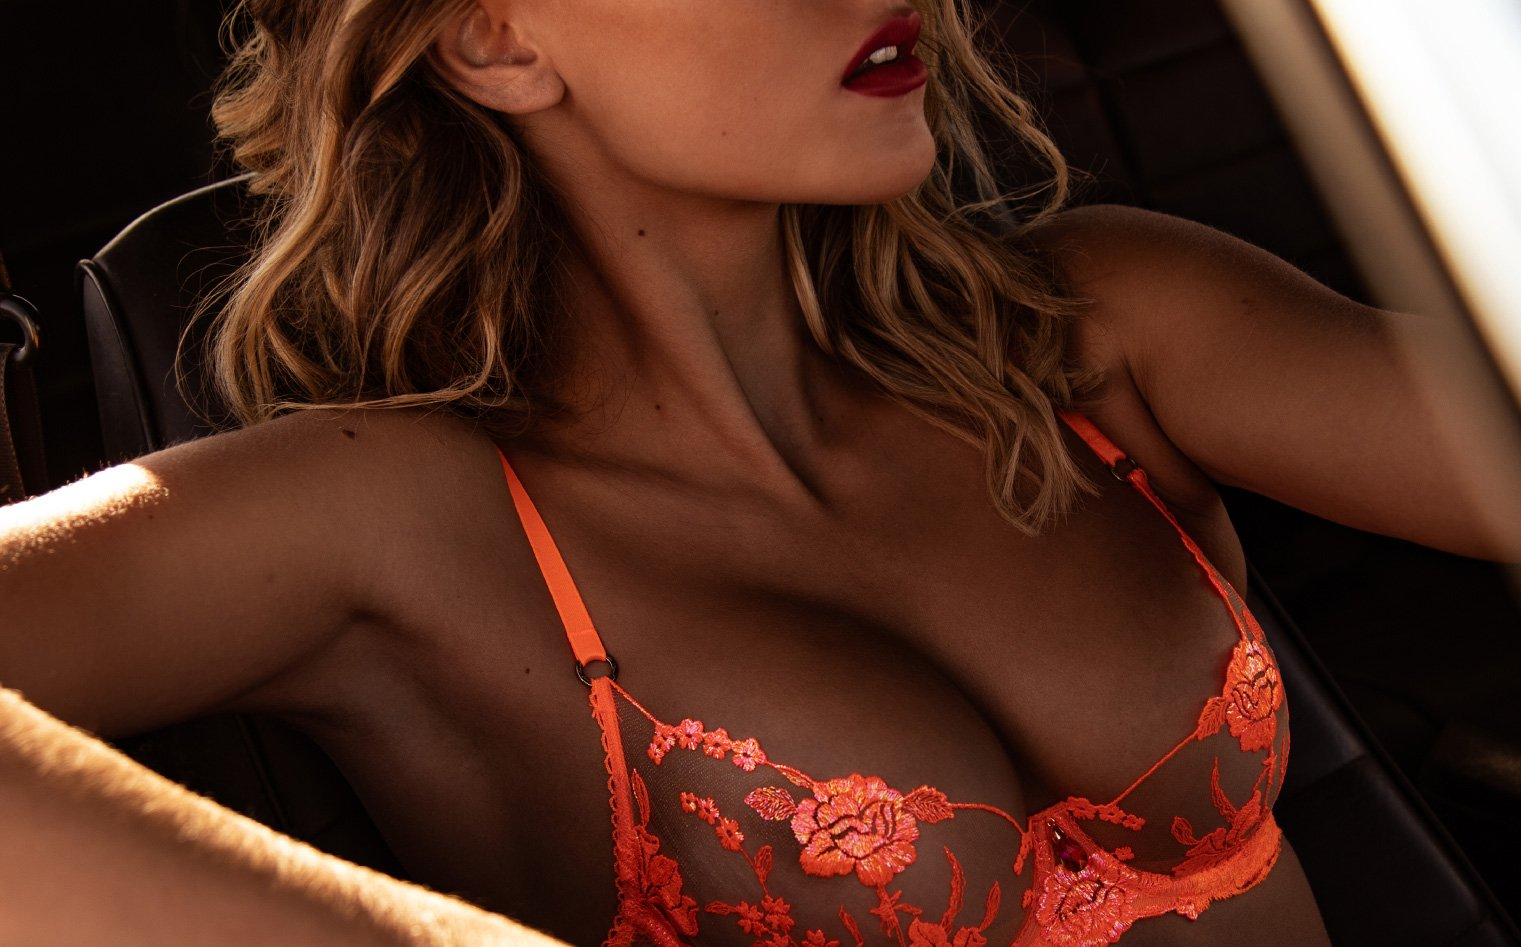 Sarah Houchens Poses In Honey Birdette's 'Whitney Orange' For Artsy Snap | INQUISITR